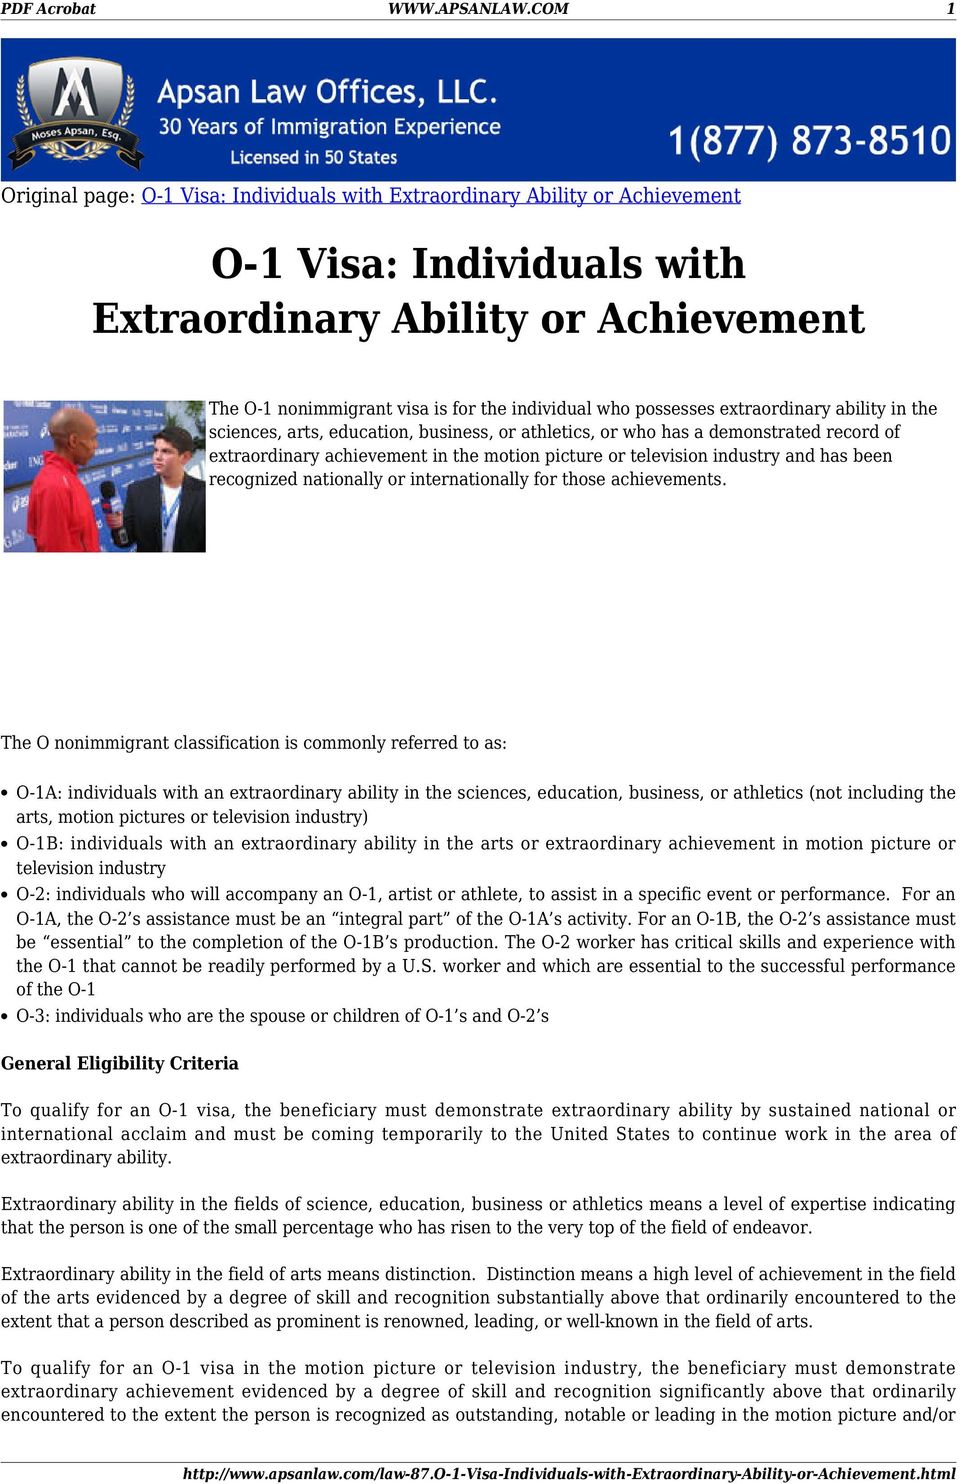 who possesses extraordinary ability in the sciences, arts, education, business, or athletics, or who has a demonstrated record of extraordinary achievement in the motion picture or television